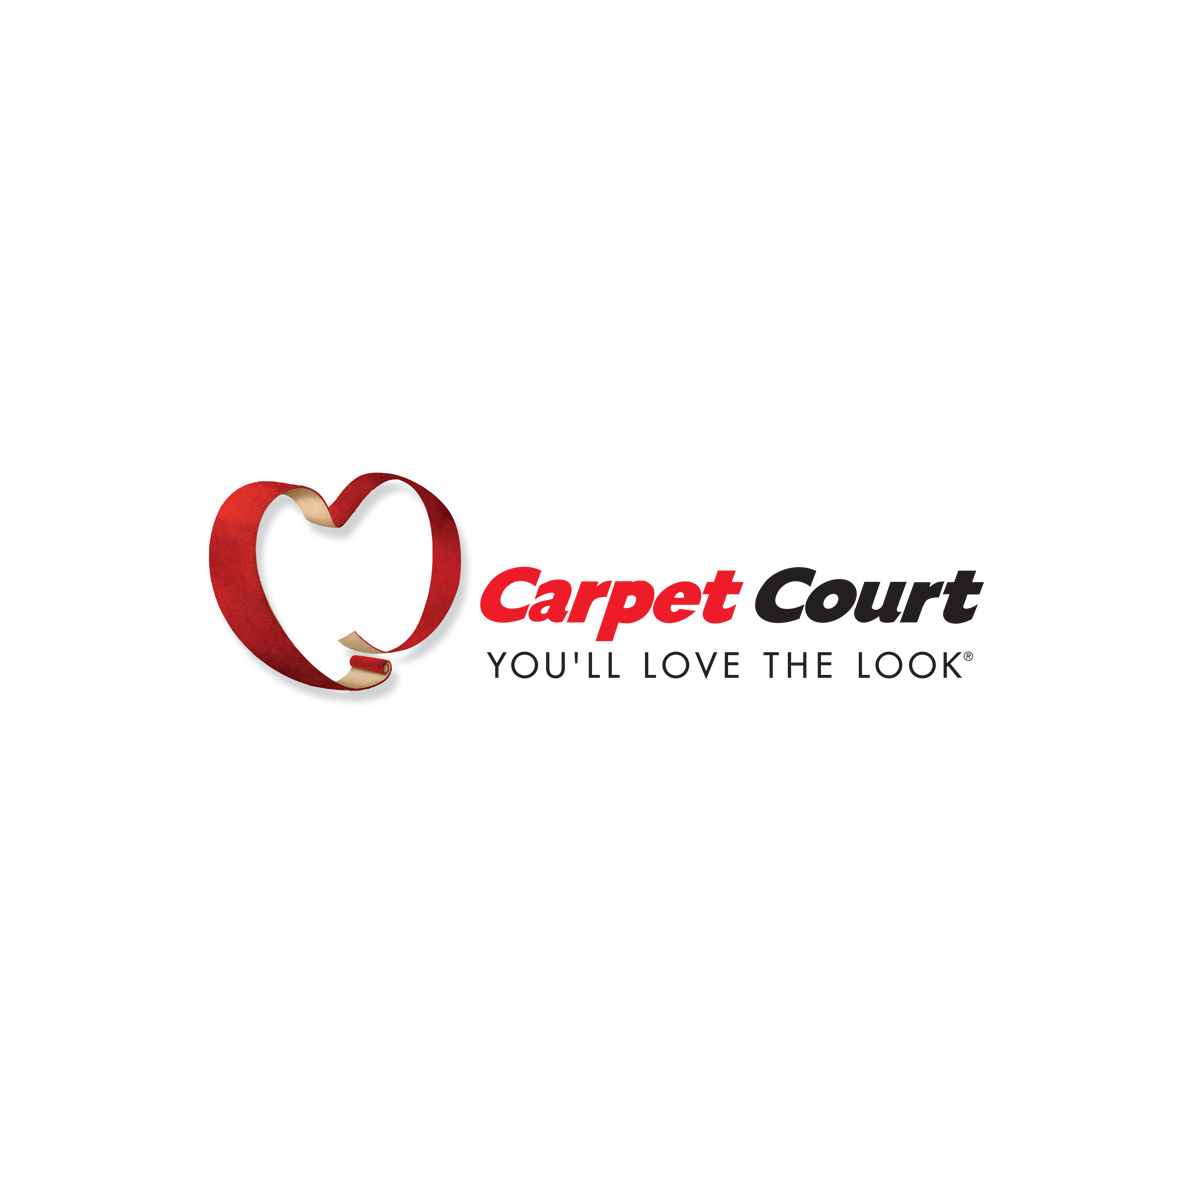 carpet court.jpg